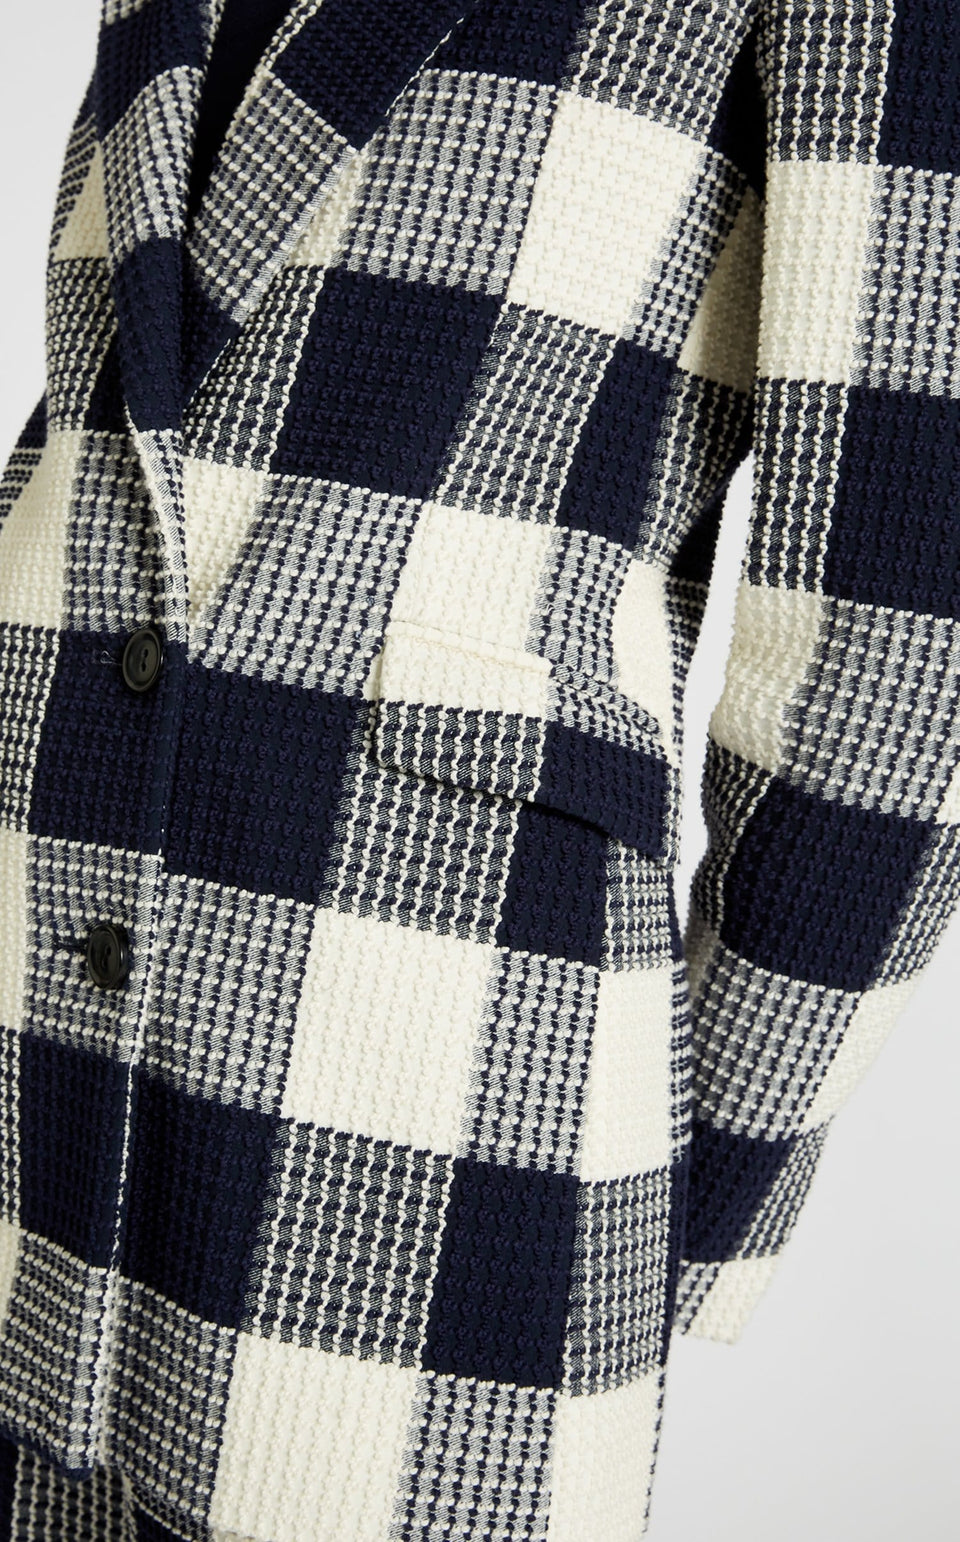 Harleston Jacket In Navy/White from Roland Mouret